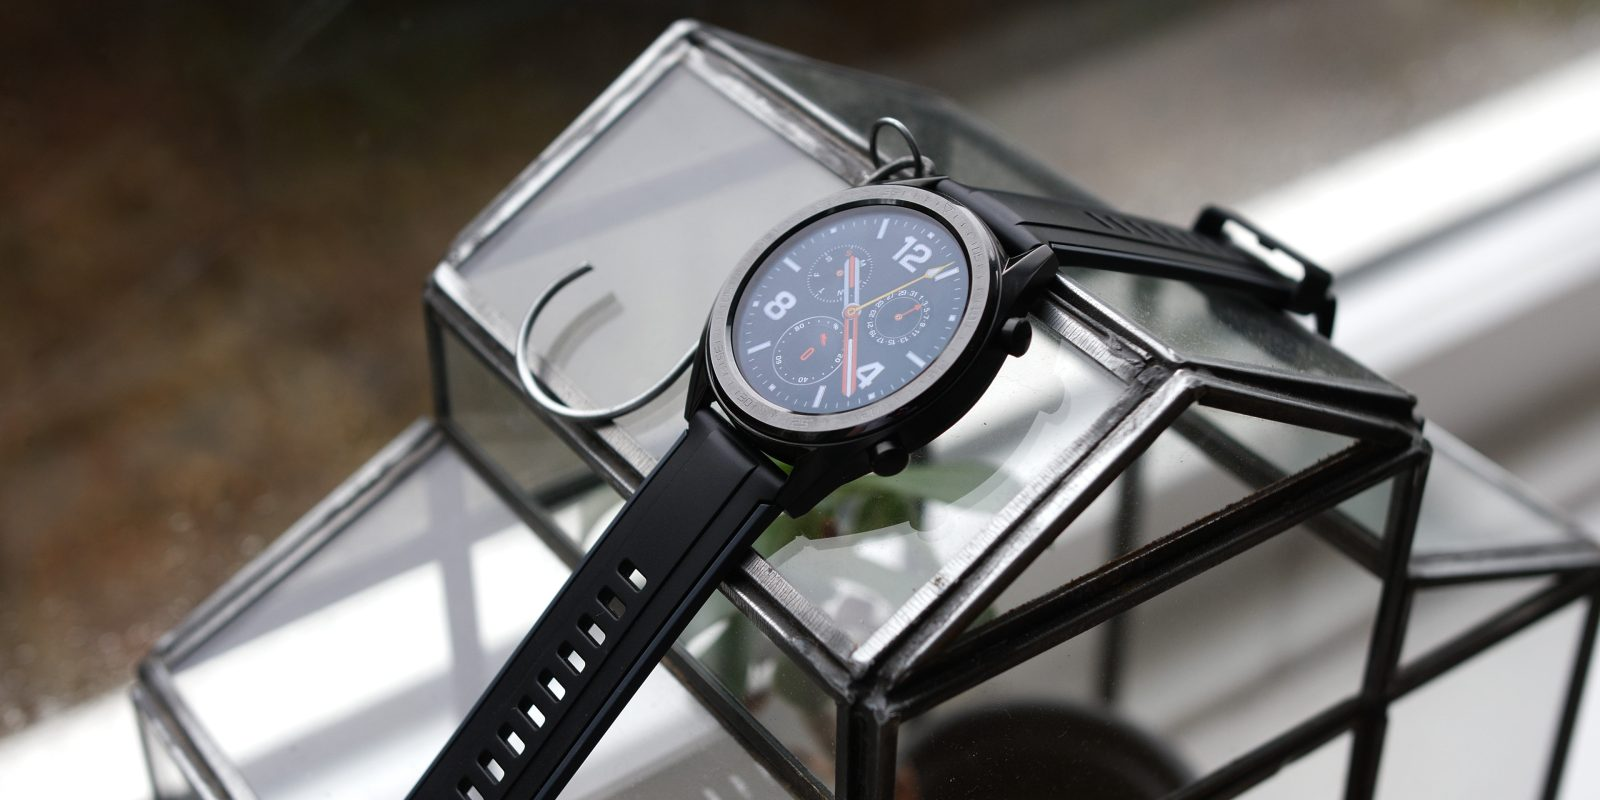 Huawei Watch GT review: A smartwatch without the brains - 9to5Google